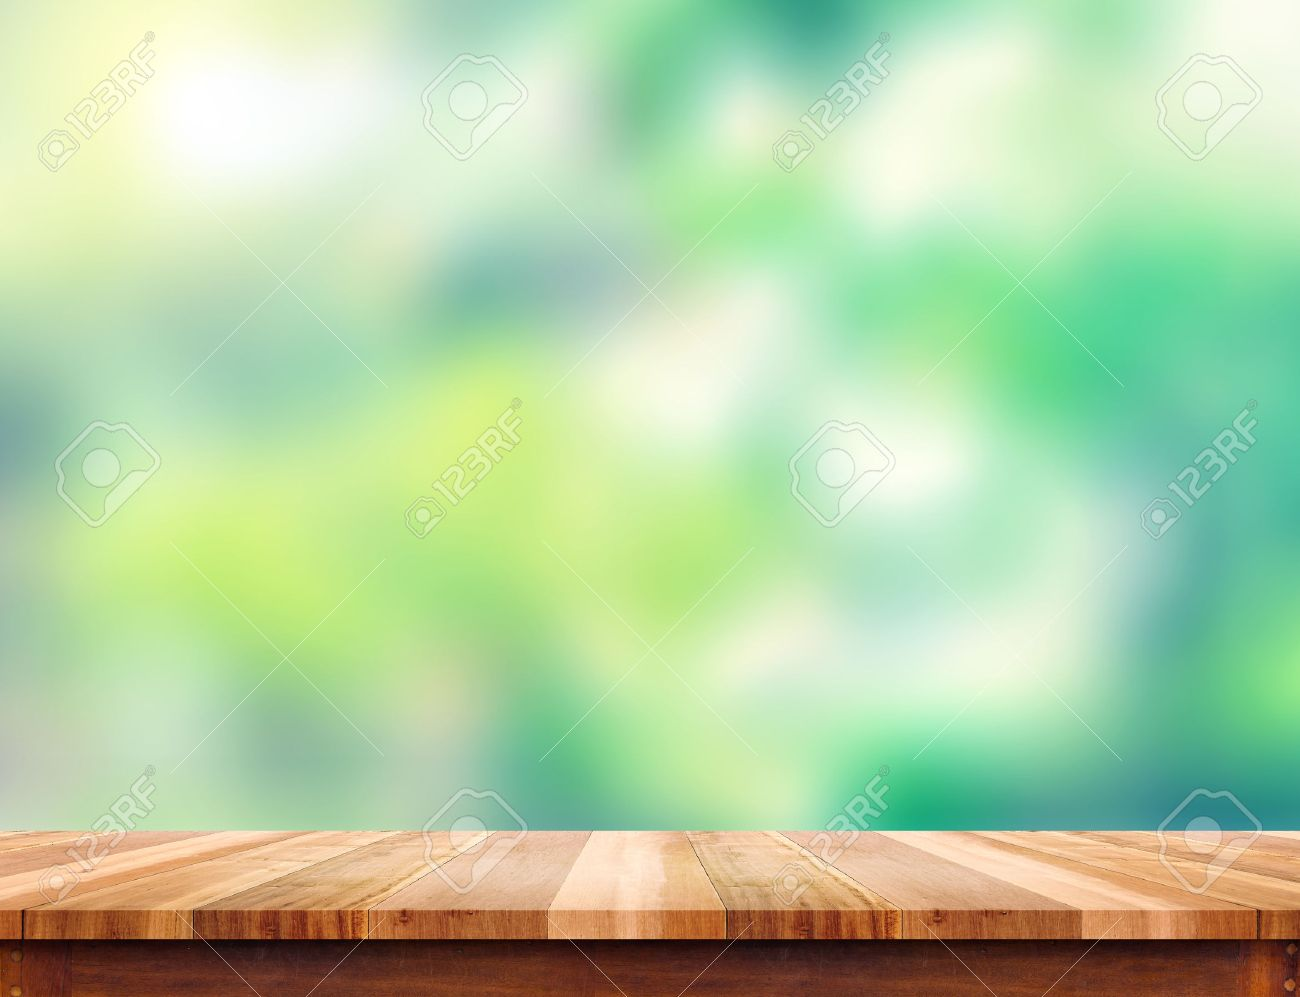 Empty Plank Brown Wood Table Top With Blur Green Tree Background, Template  Mock Up For